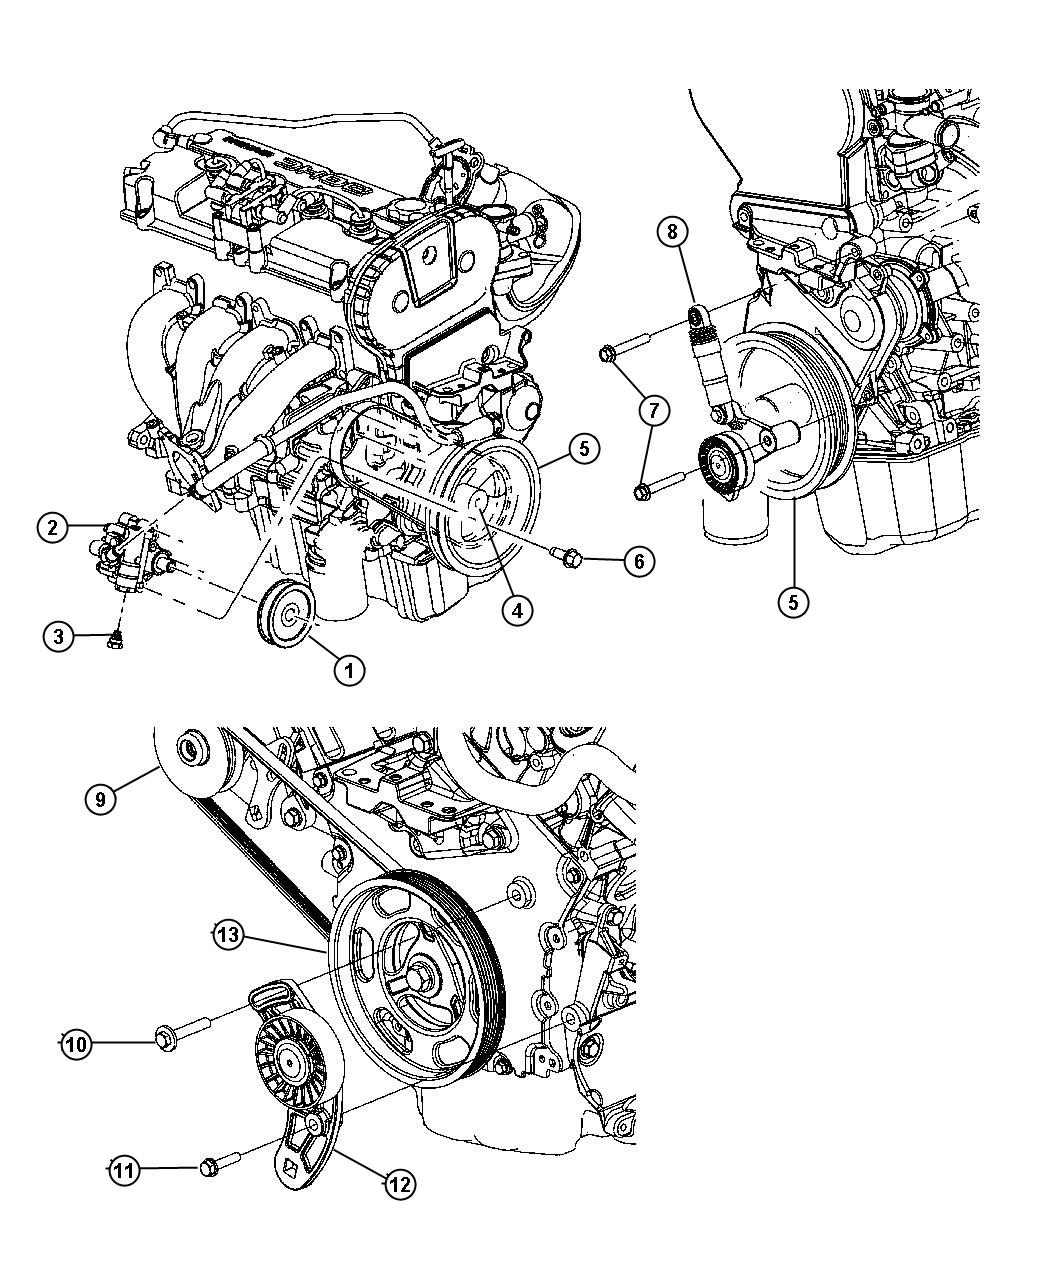 1998 Dodge Durango Damper  Engine Vibration  Dohc  Timing